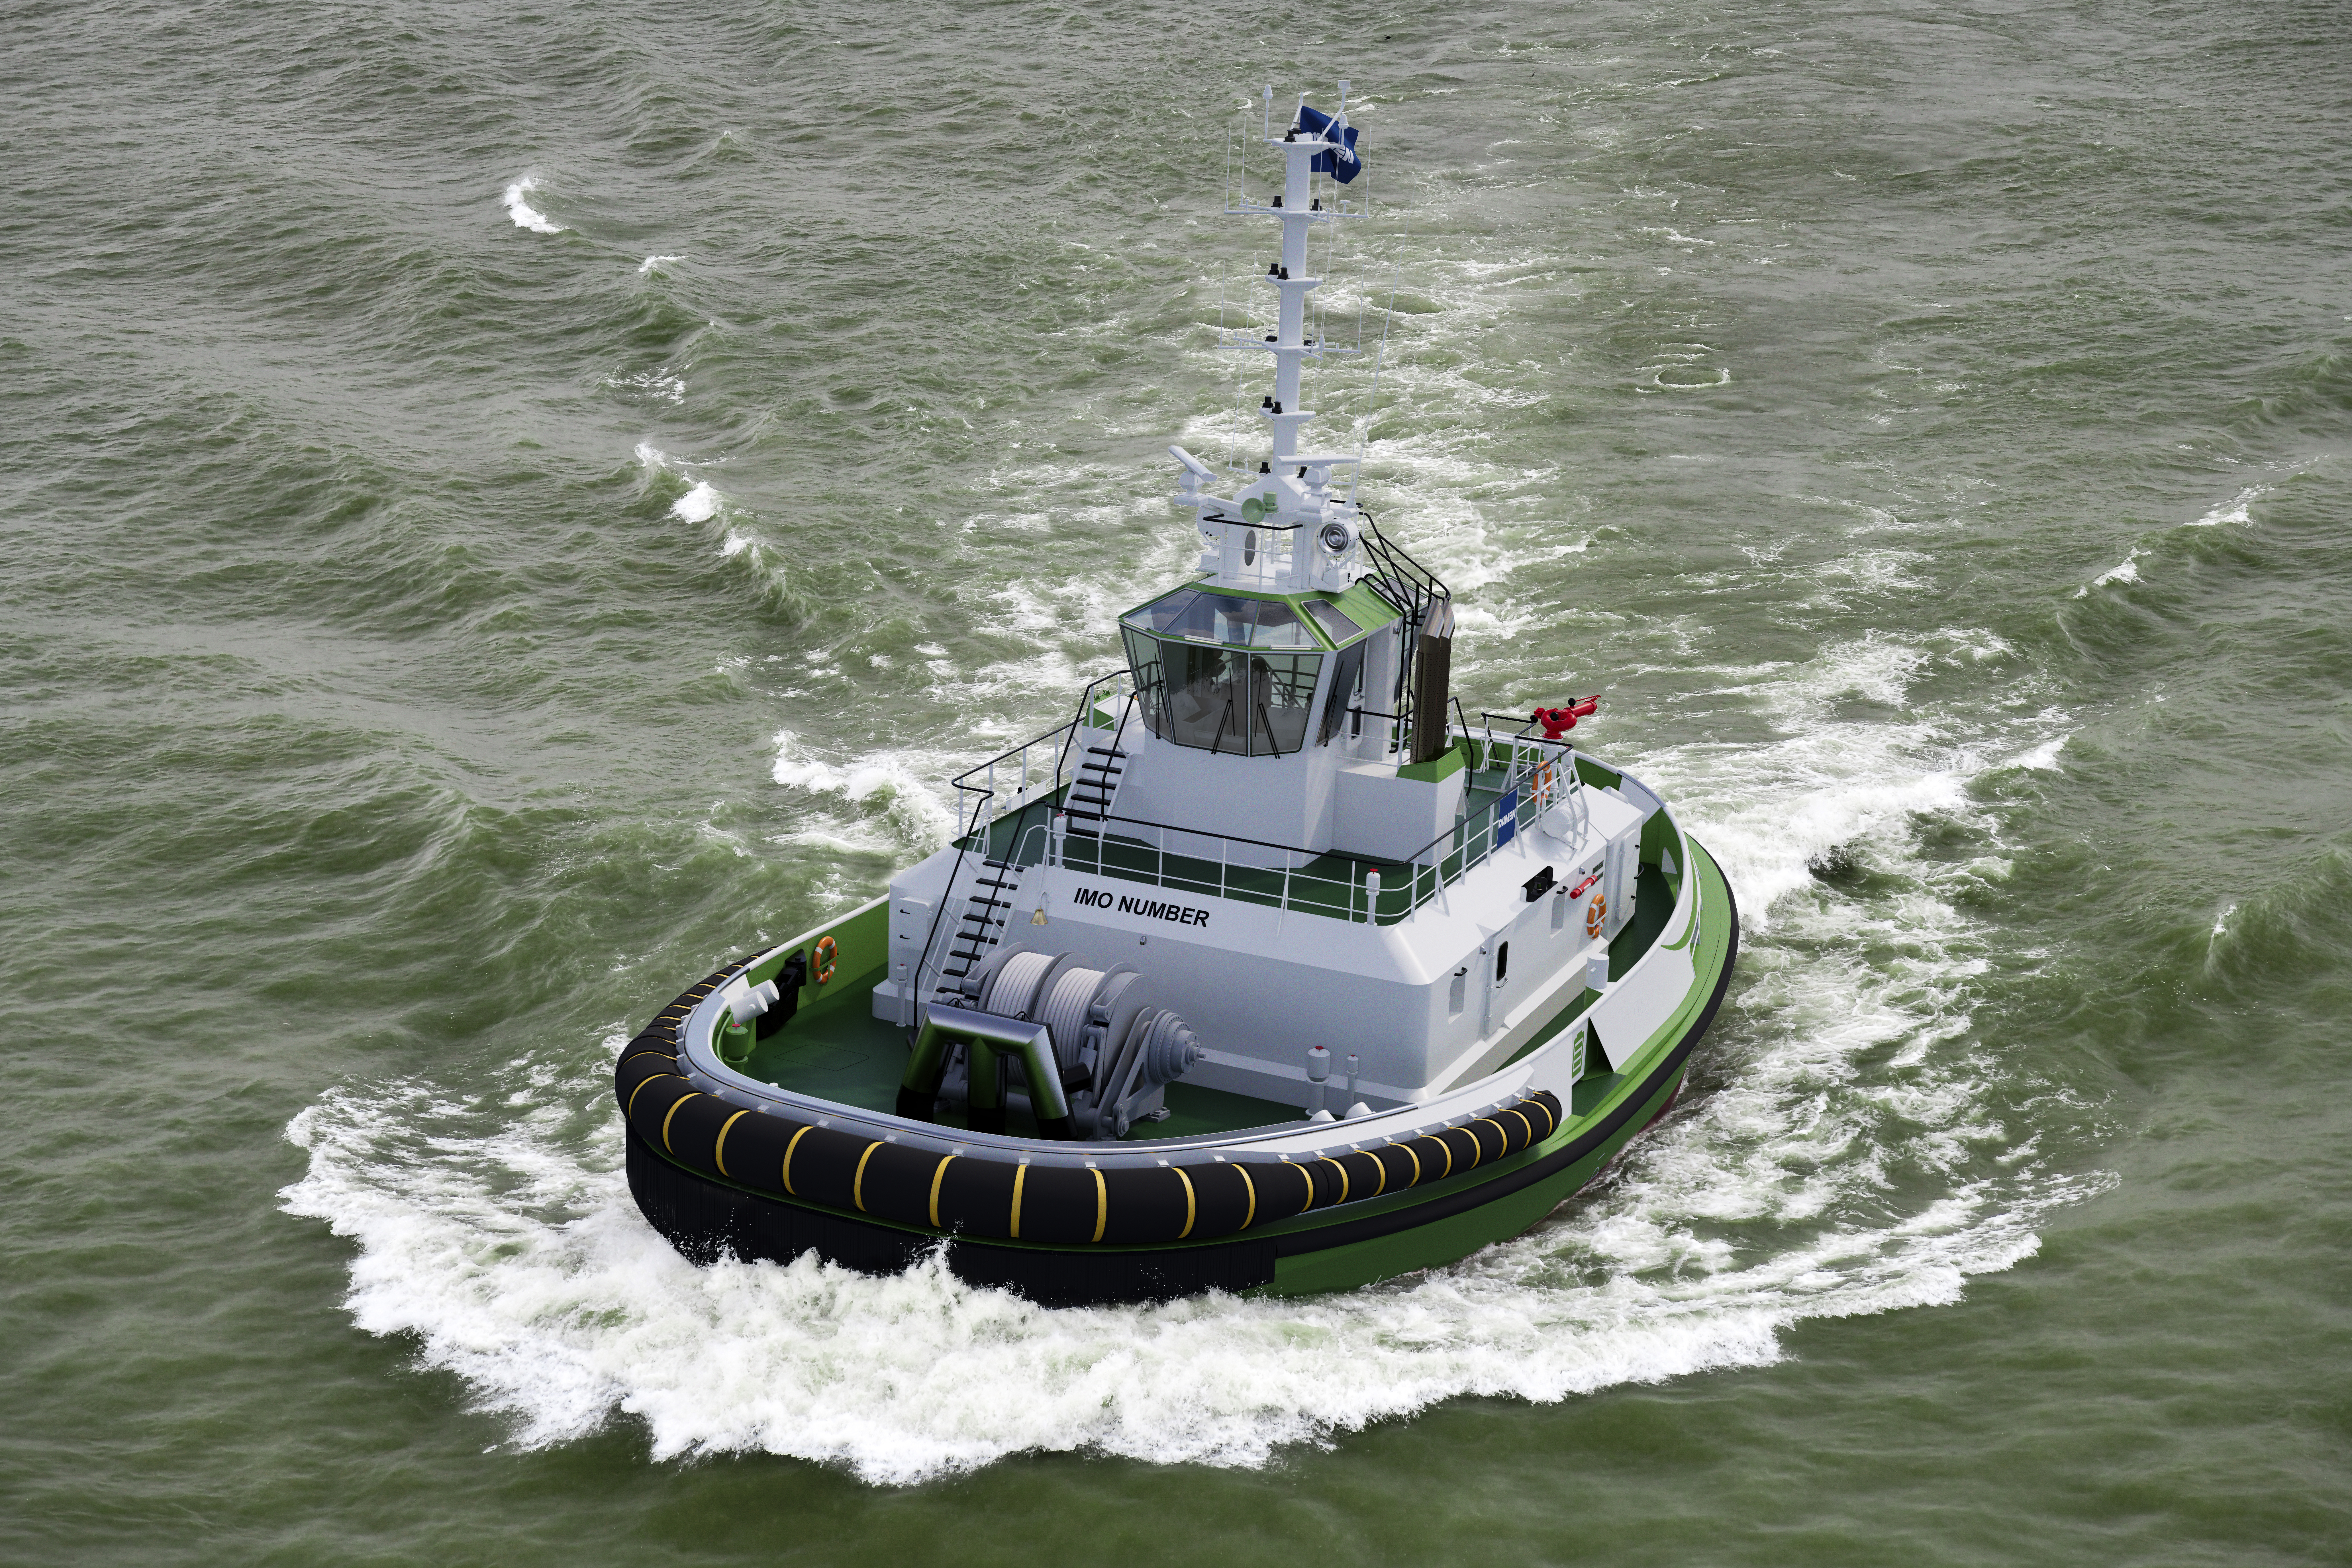 An artist impression of 'Sparky', the world's first fully electric tugboat with a 70 ton bollard pull